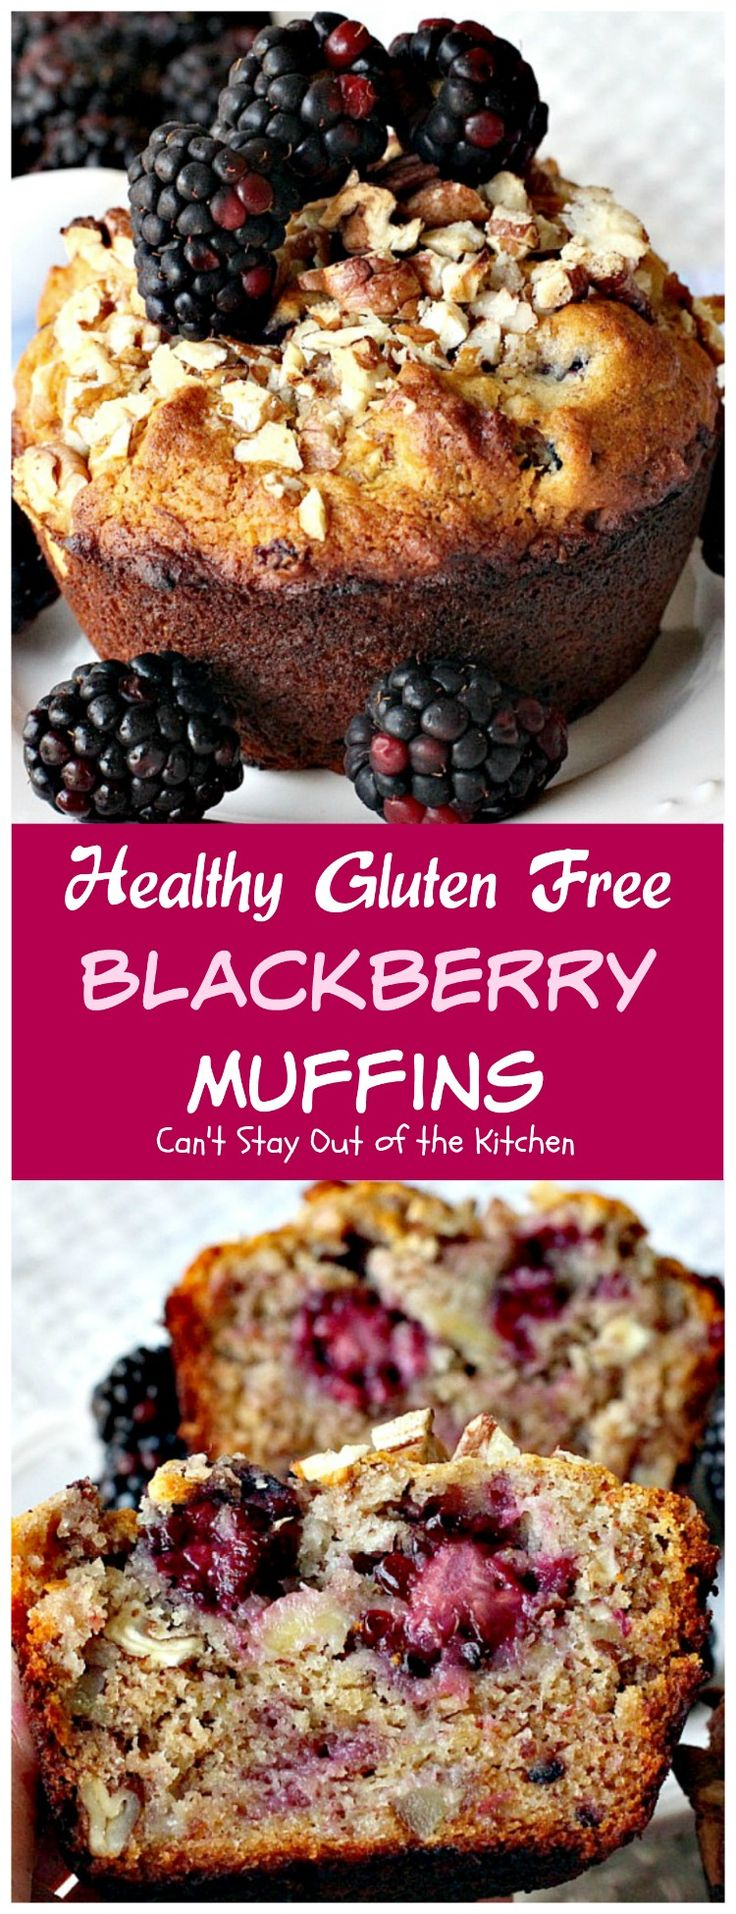 Healthy Gluten Free Blackberry Muffins | Can't Stay Out of the Kitchen |